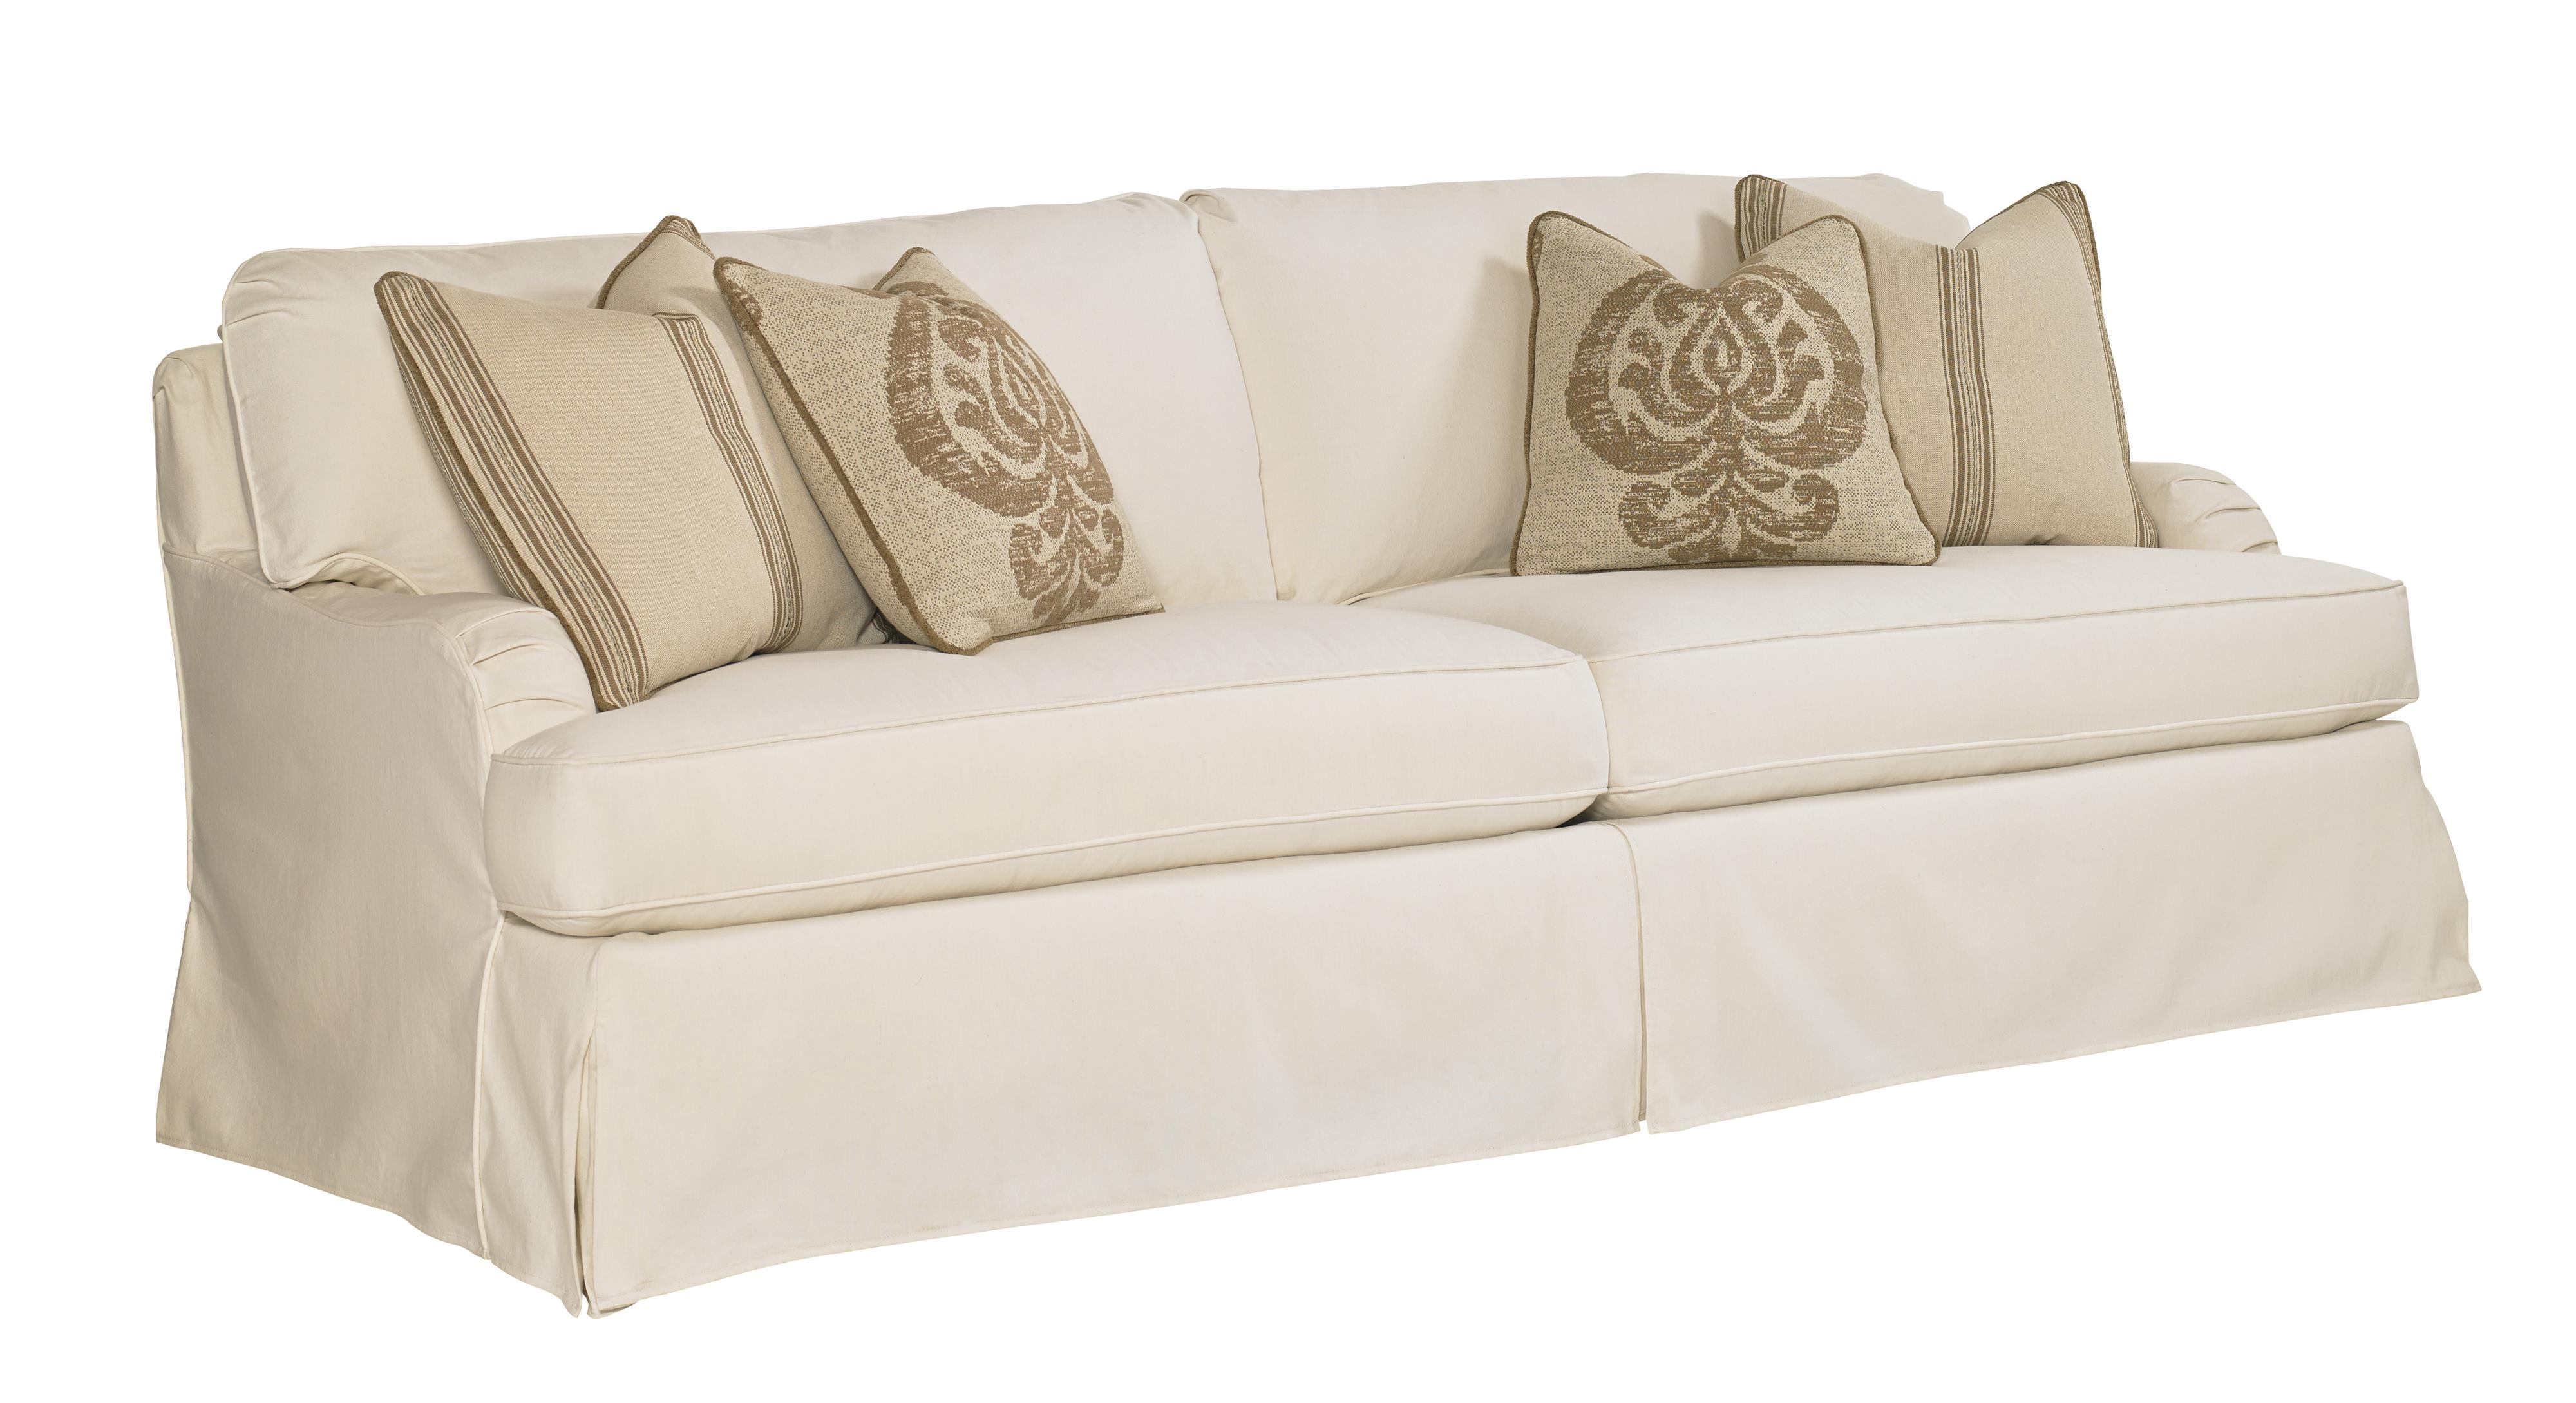 Lexington Coventry Hills Stowe Slipcover Sofa   Item Number: 7476 33CR